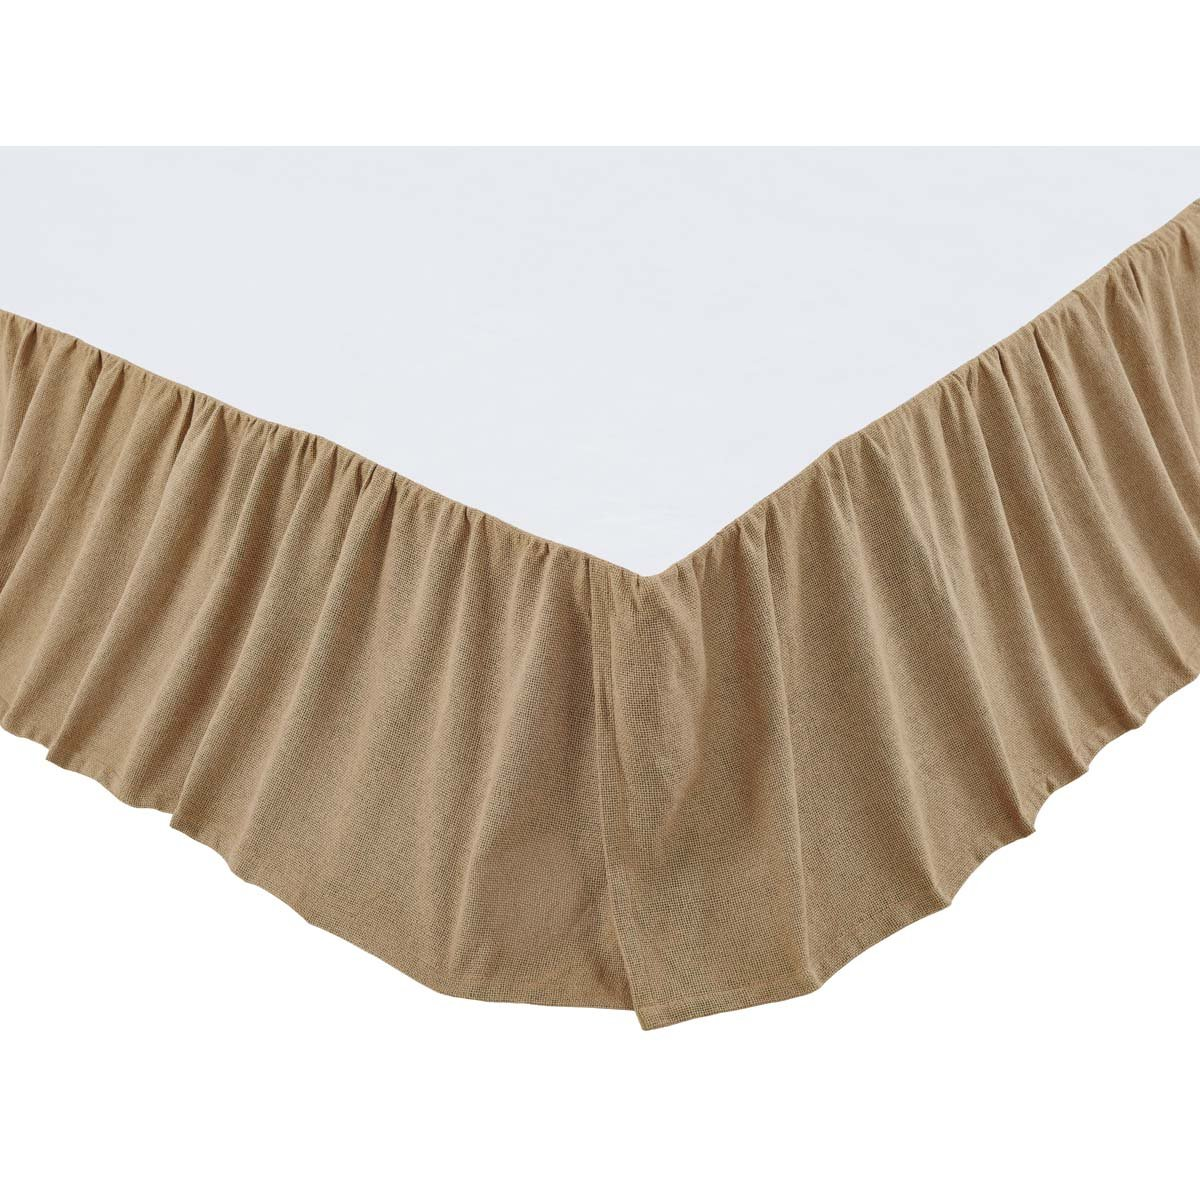 VHC Brands Classic Country Farmhouse Bedding - Burlap Natural Tan Ruffled Bed Skirt, Twin 29600